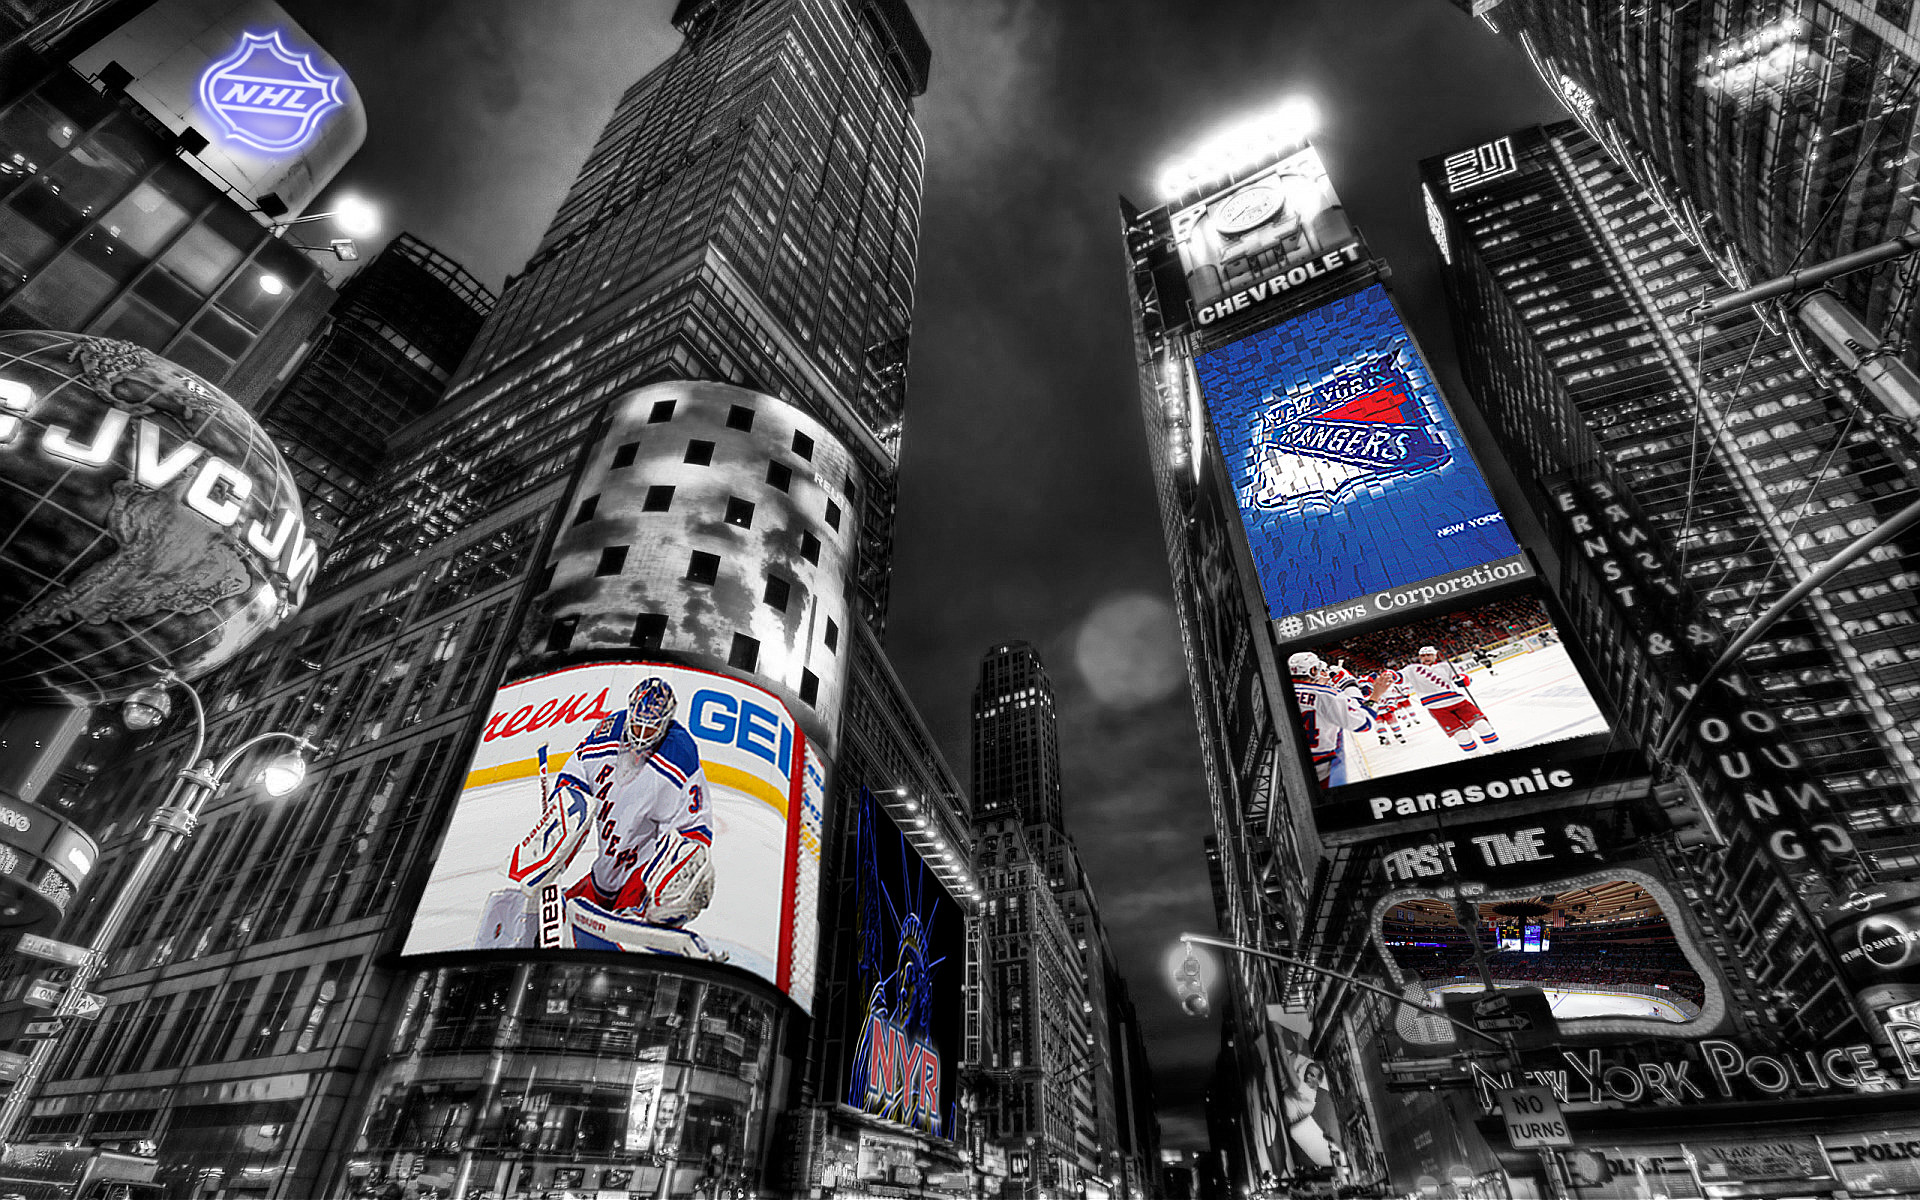 1920x1200 New-York-Rangers-Times-Square-Wallpaper-by-Realyze